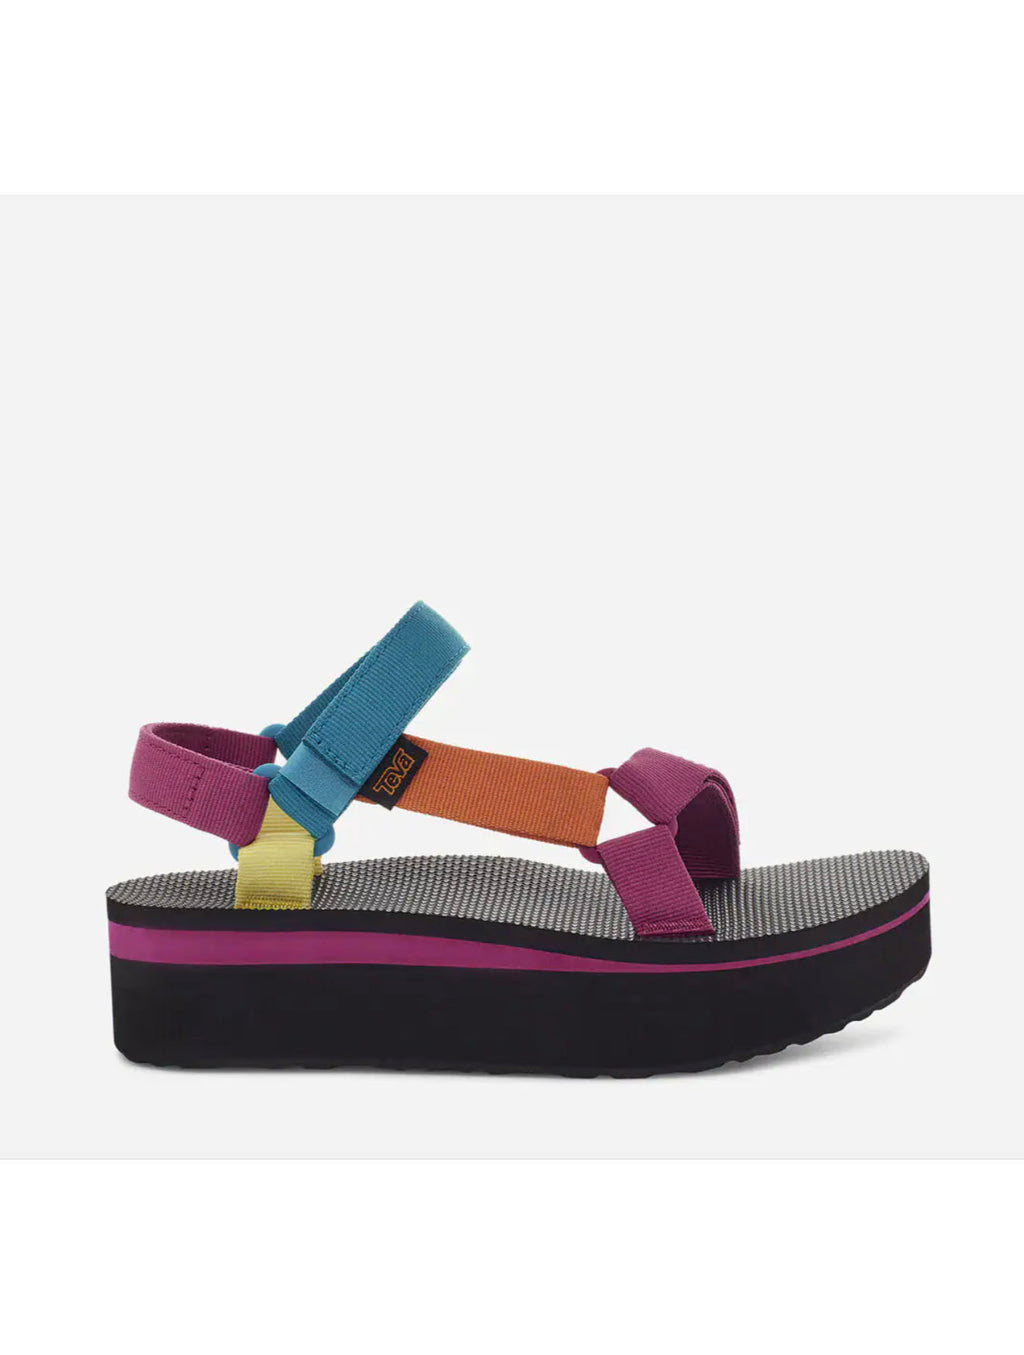 Teva Flatform Sandal in Retro Multi